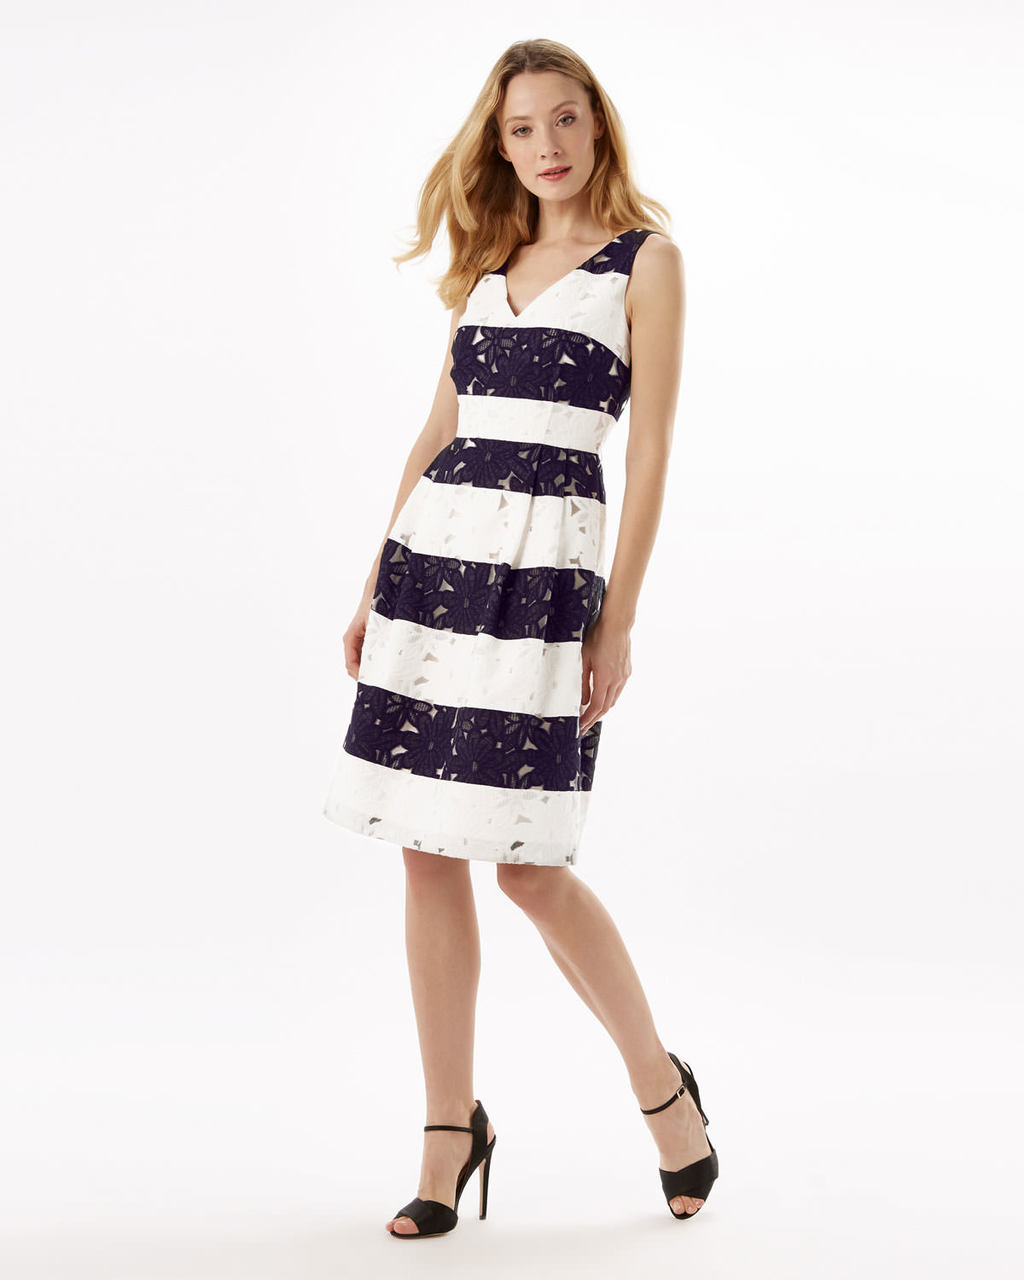 Bea Stripe Dress - neckline: v-neck; pattern: horizontal stripes; sleeve style: sleeveless; waist detail: fitted waist; secondary colour: white; predominant colour: black; occasions: evening; length: on the knee; fit: fitted at waist & bust; style: fit & flare; fibres: cotton - mix; hip detail: structured pleats at hip; sleeve length: sleeveless; trends: monochrome; pattern type: fabric; texture group: other - light to midweight; multicoloured: multicoloured; season: a/w 2015